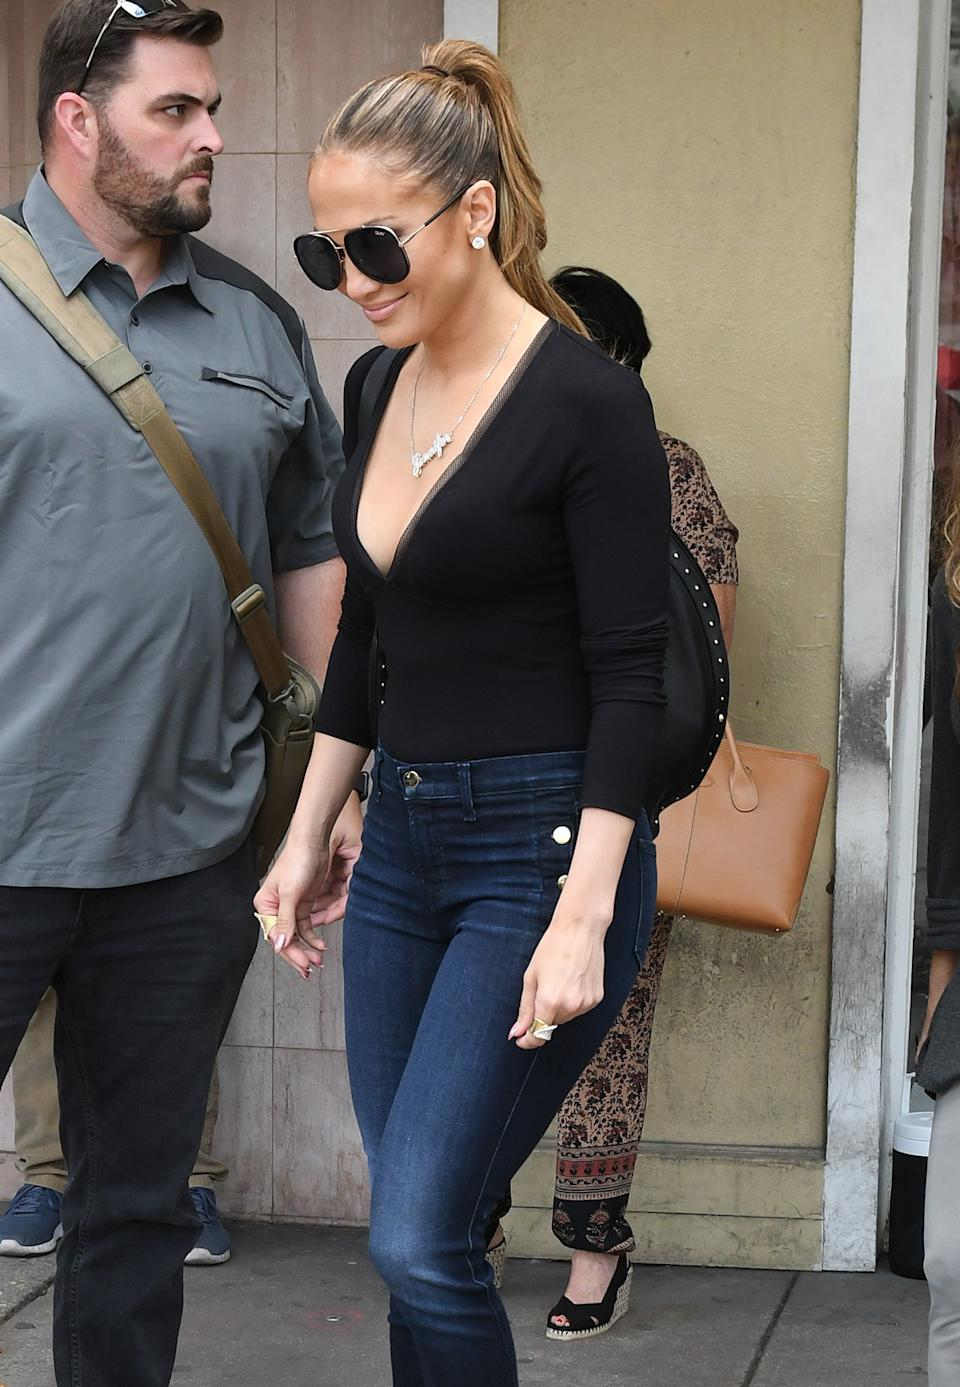 Exclusive, Miami, FL - 04/19/2017 - Jennifer Lopez pairs tight jeans with a black bodysuit, a nameplate necklace, and a statement purse as she goes shopping with friends in Miami.   -PICTURED: Jennifer Lopez -PHOTO by: INSTAR/ddp images  -Instar_Jennifer_Lopez_Shopping_in_Miami_10011186530